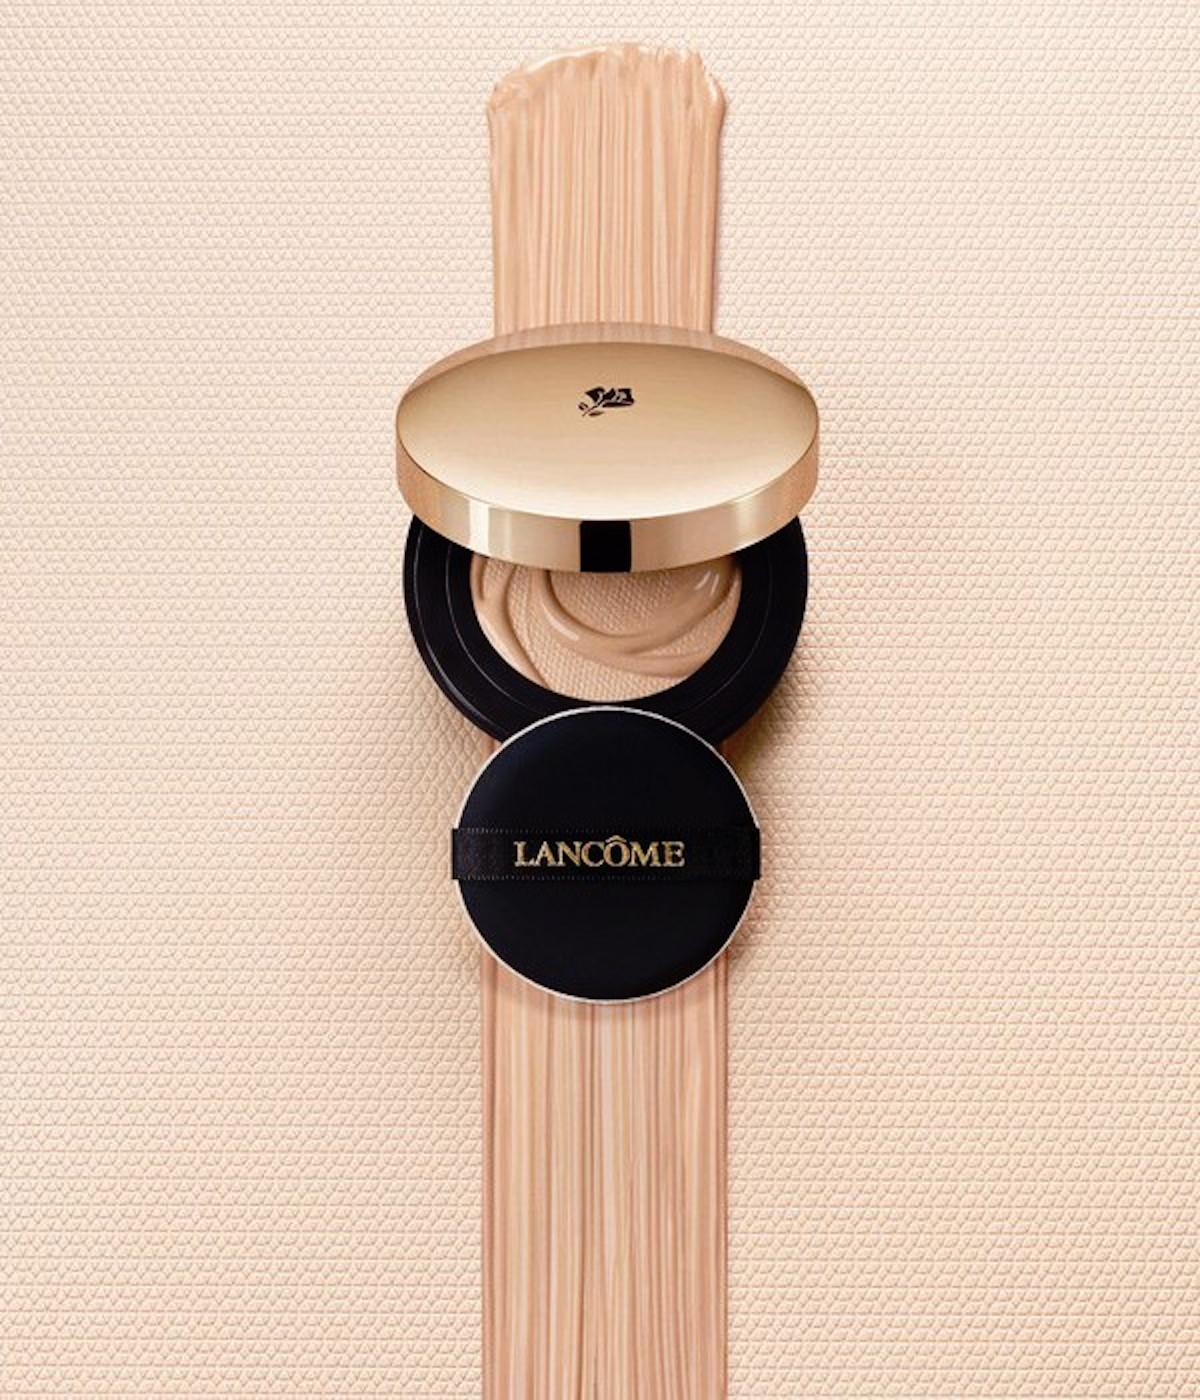 lancome-fall-2016-teint-idole-ultra-cushion-pudri